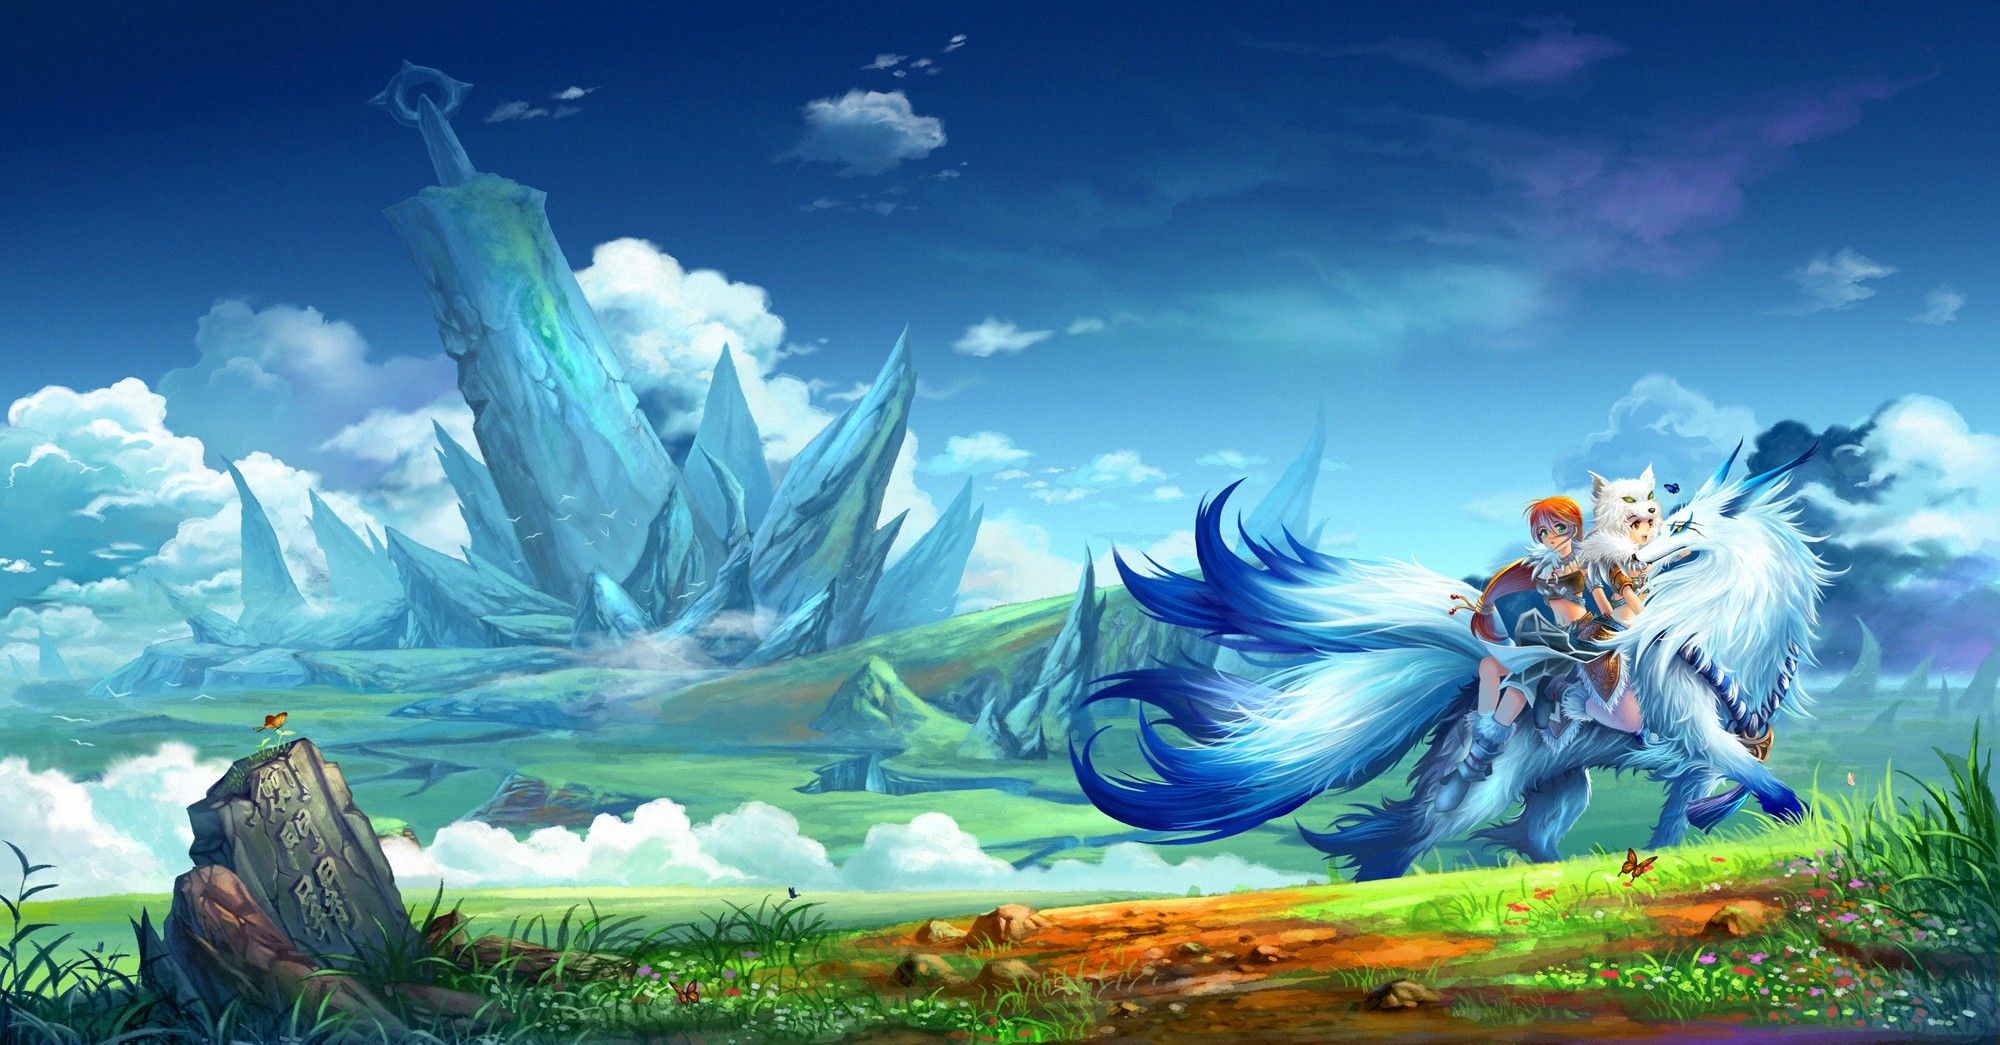 anime fantasy landscape wallpapers free as wallpaper hd | wallpapers